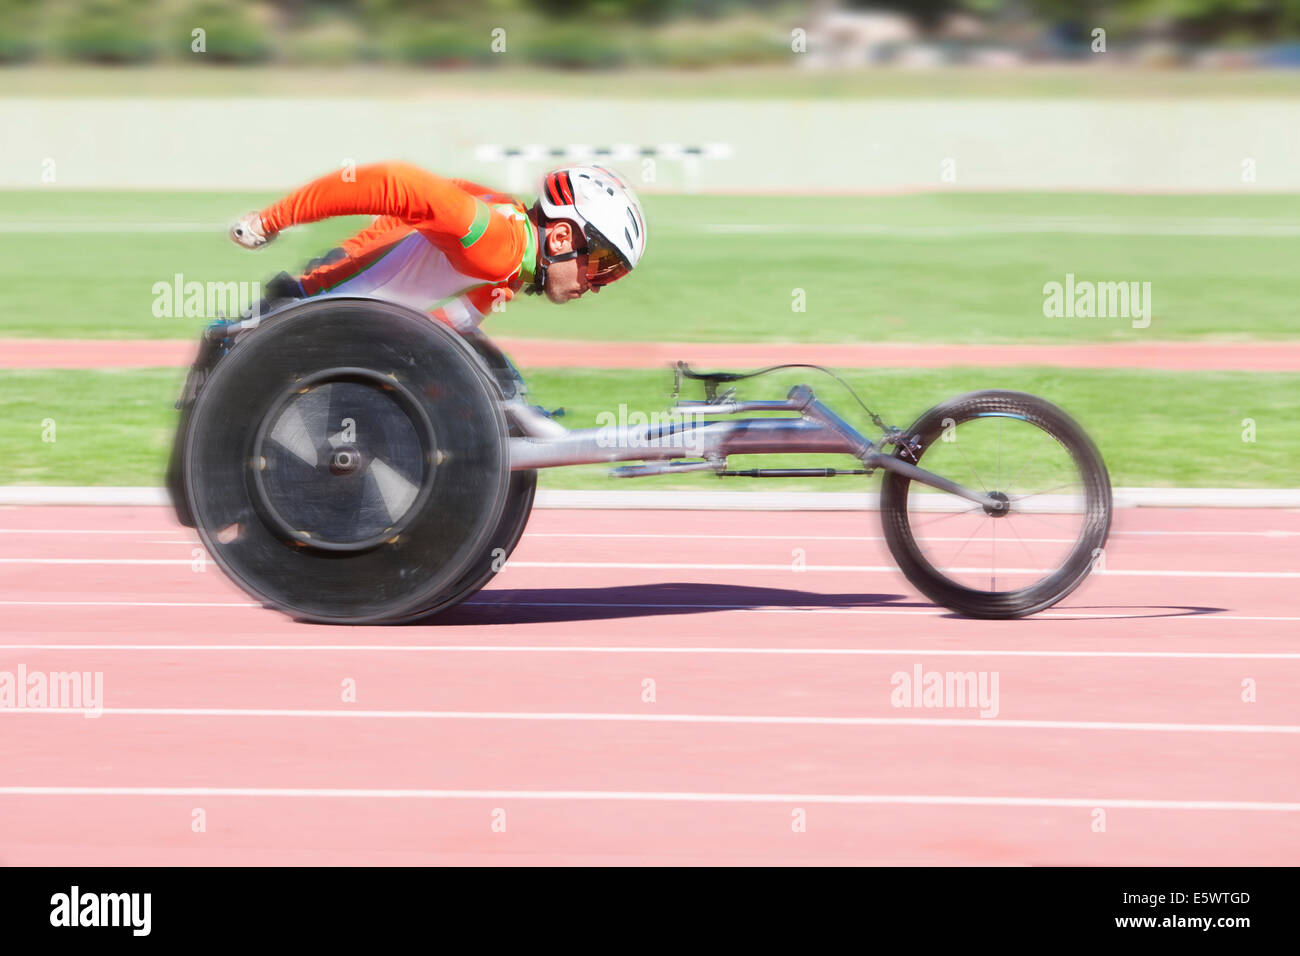 Athlete in para-athletic competition - Stock Image